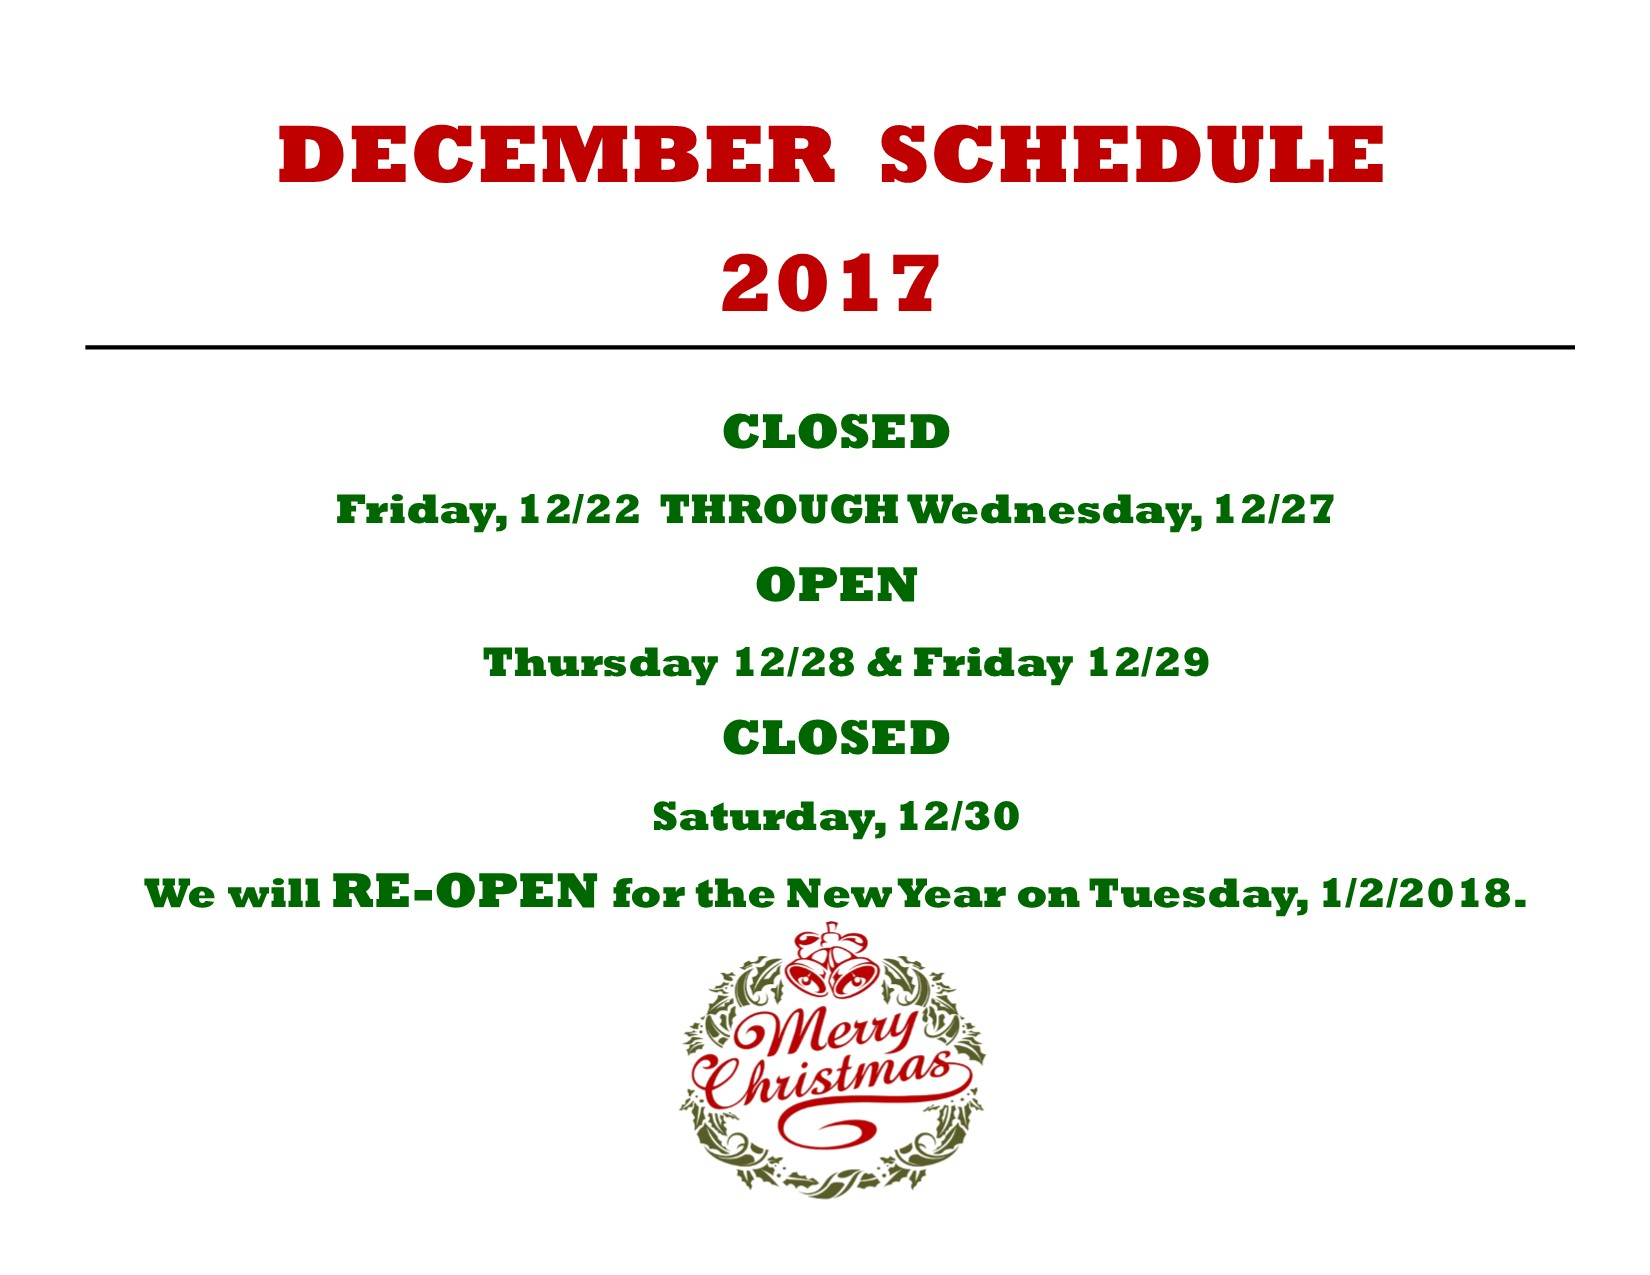 December holiday hours.jpg